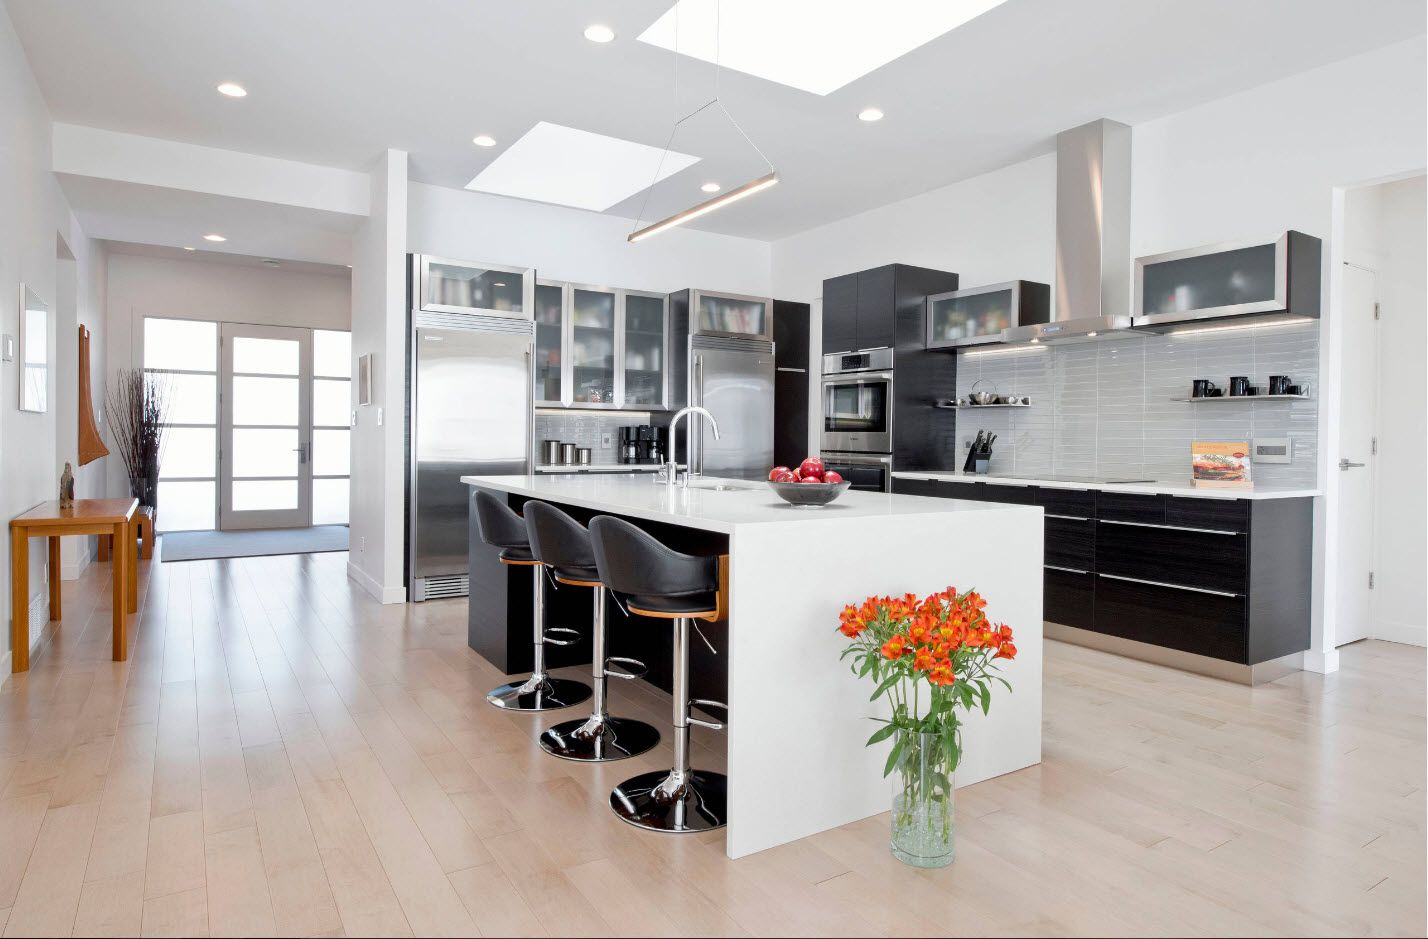 Classic styled Large kitchen with black bar chairs